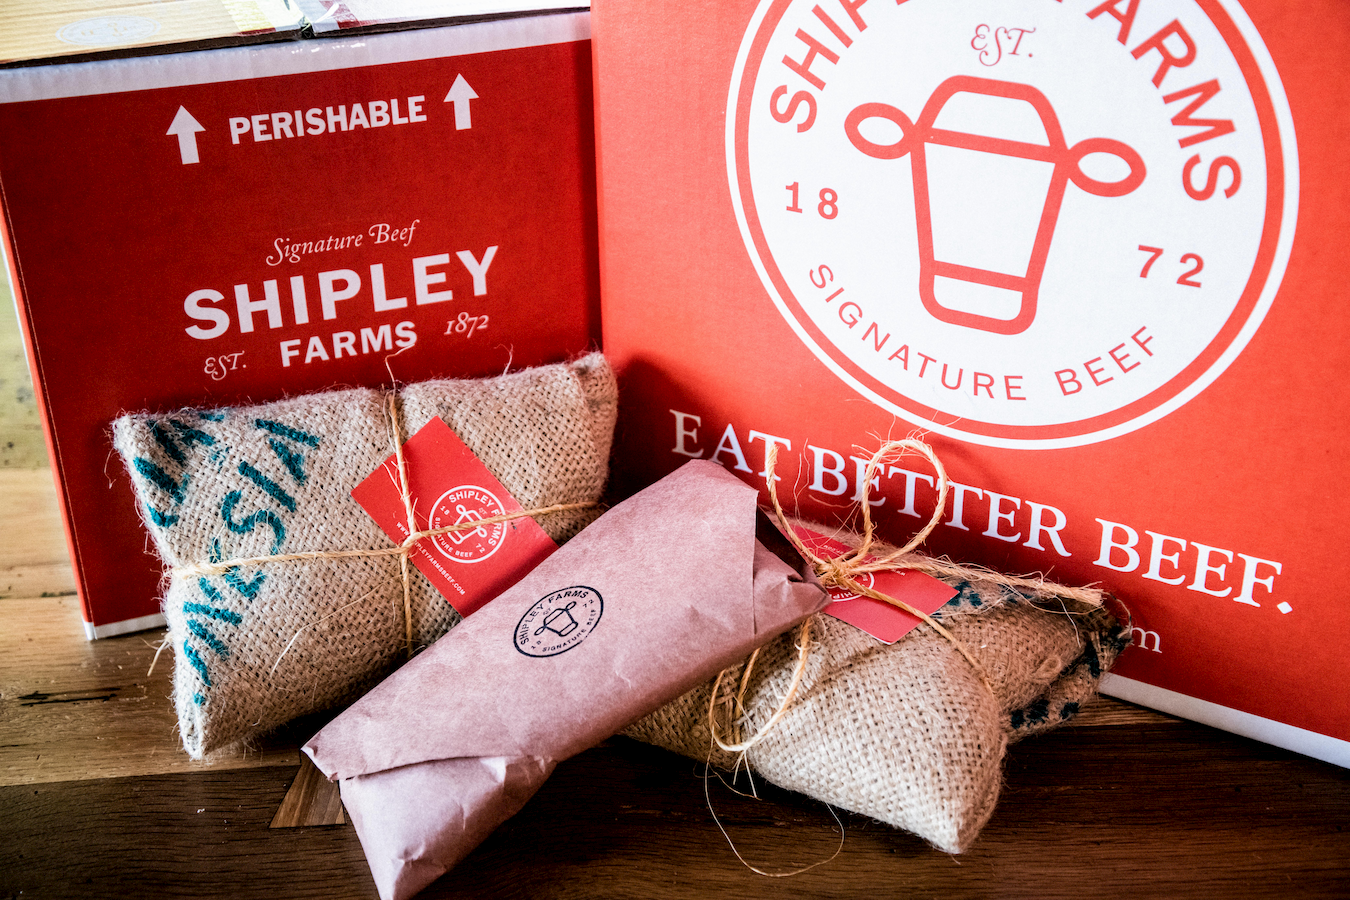 Shipley Farm's red packaging with logo and wrapped beef products